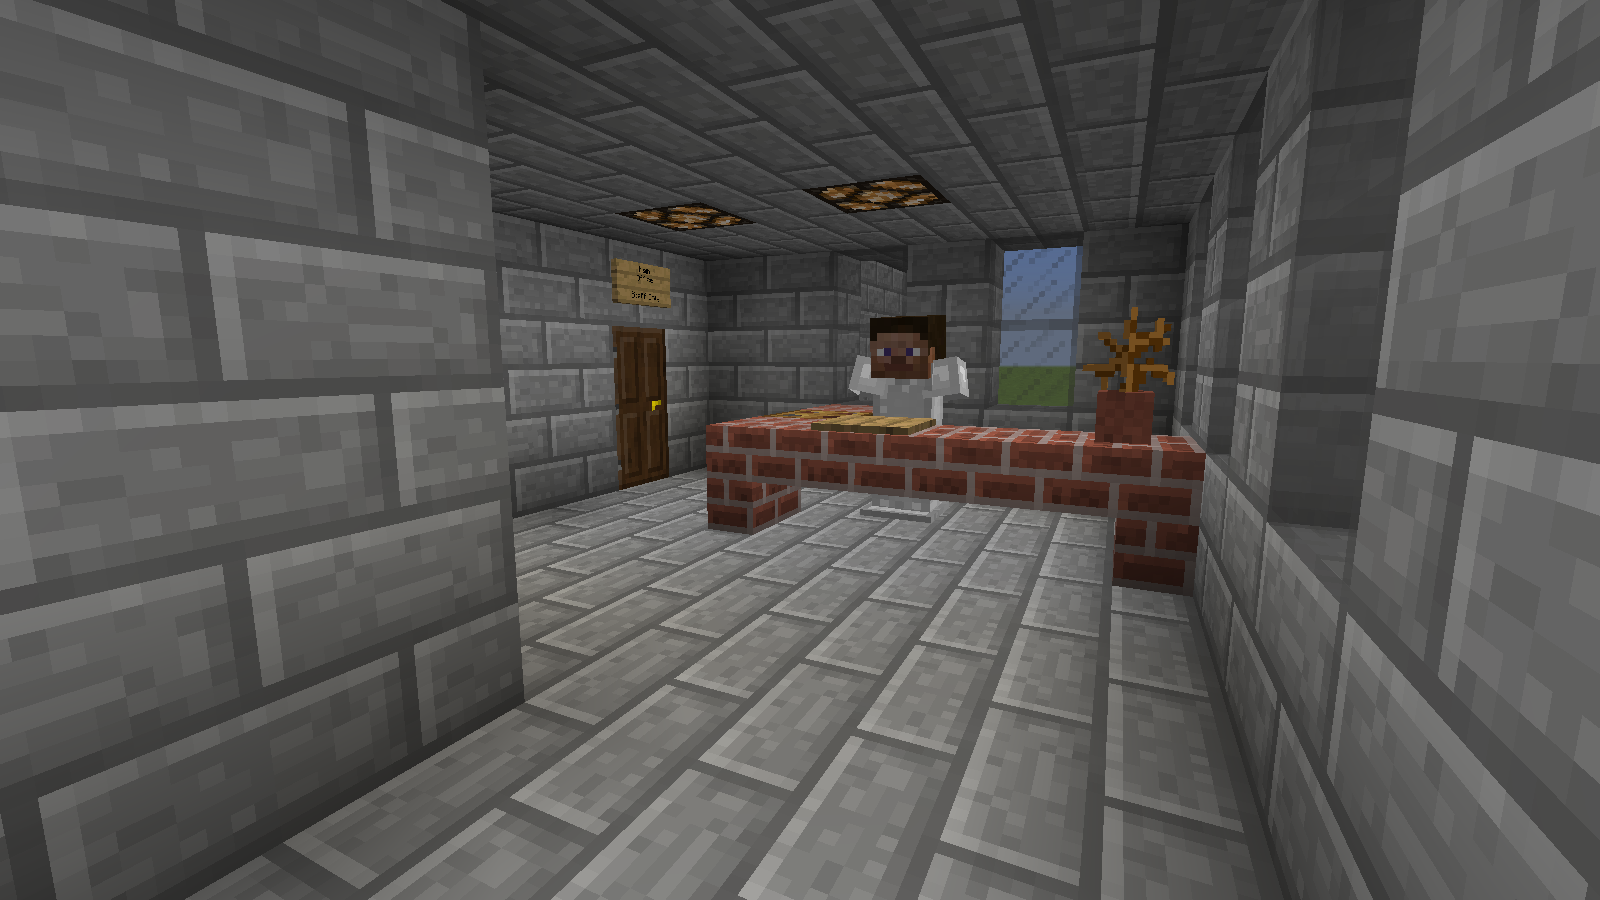 How To Build A Jail Cell In Minecraft